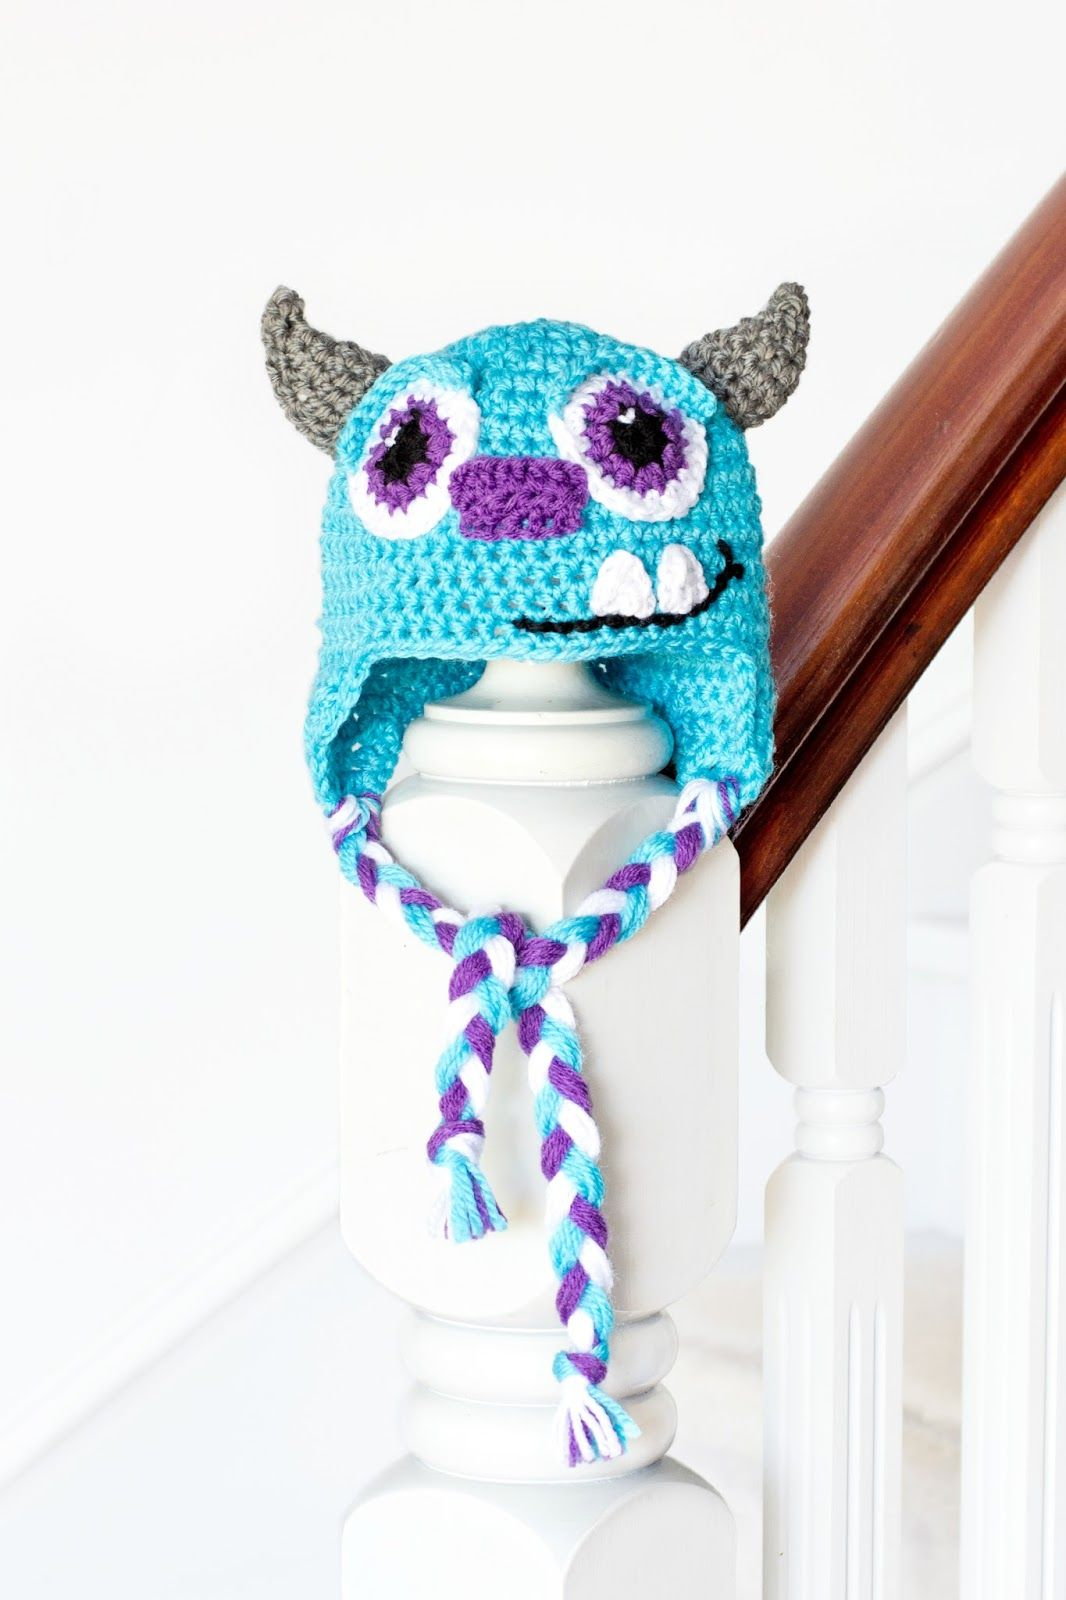 Monsters Inc. Sulley Inspired Baby Hat Crochet Pattern | Las modelos ...